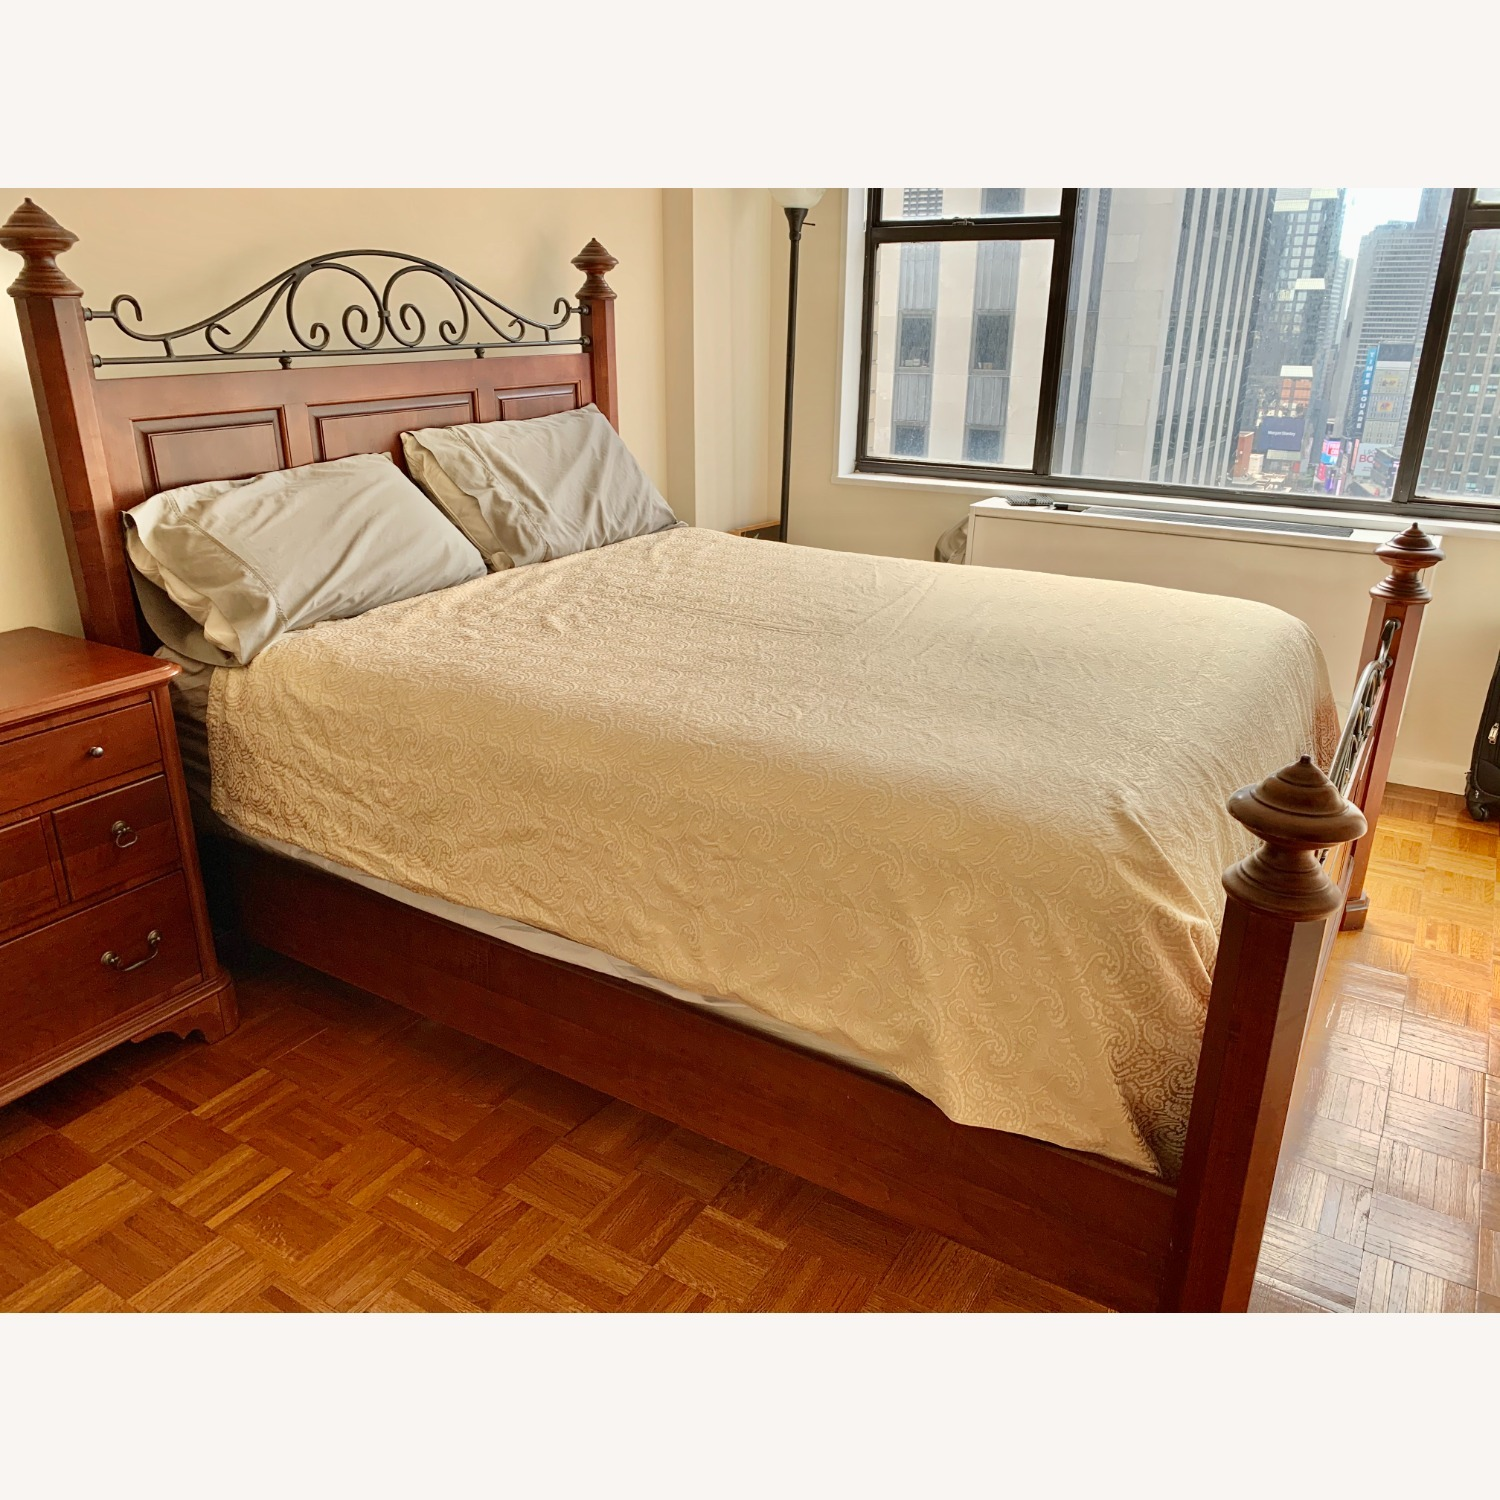 Durham Furniture Solid Wood Queen Bed - image-2